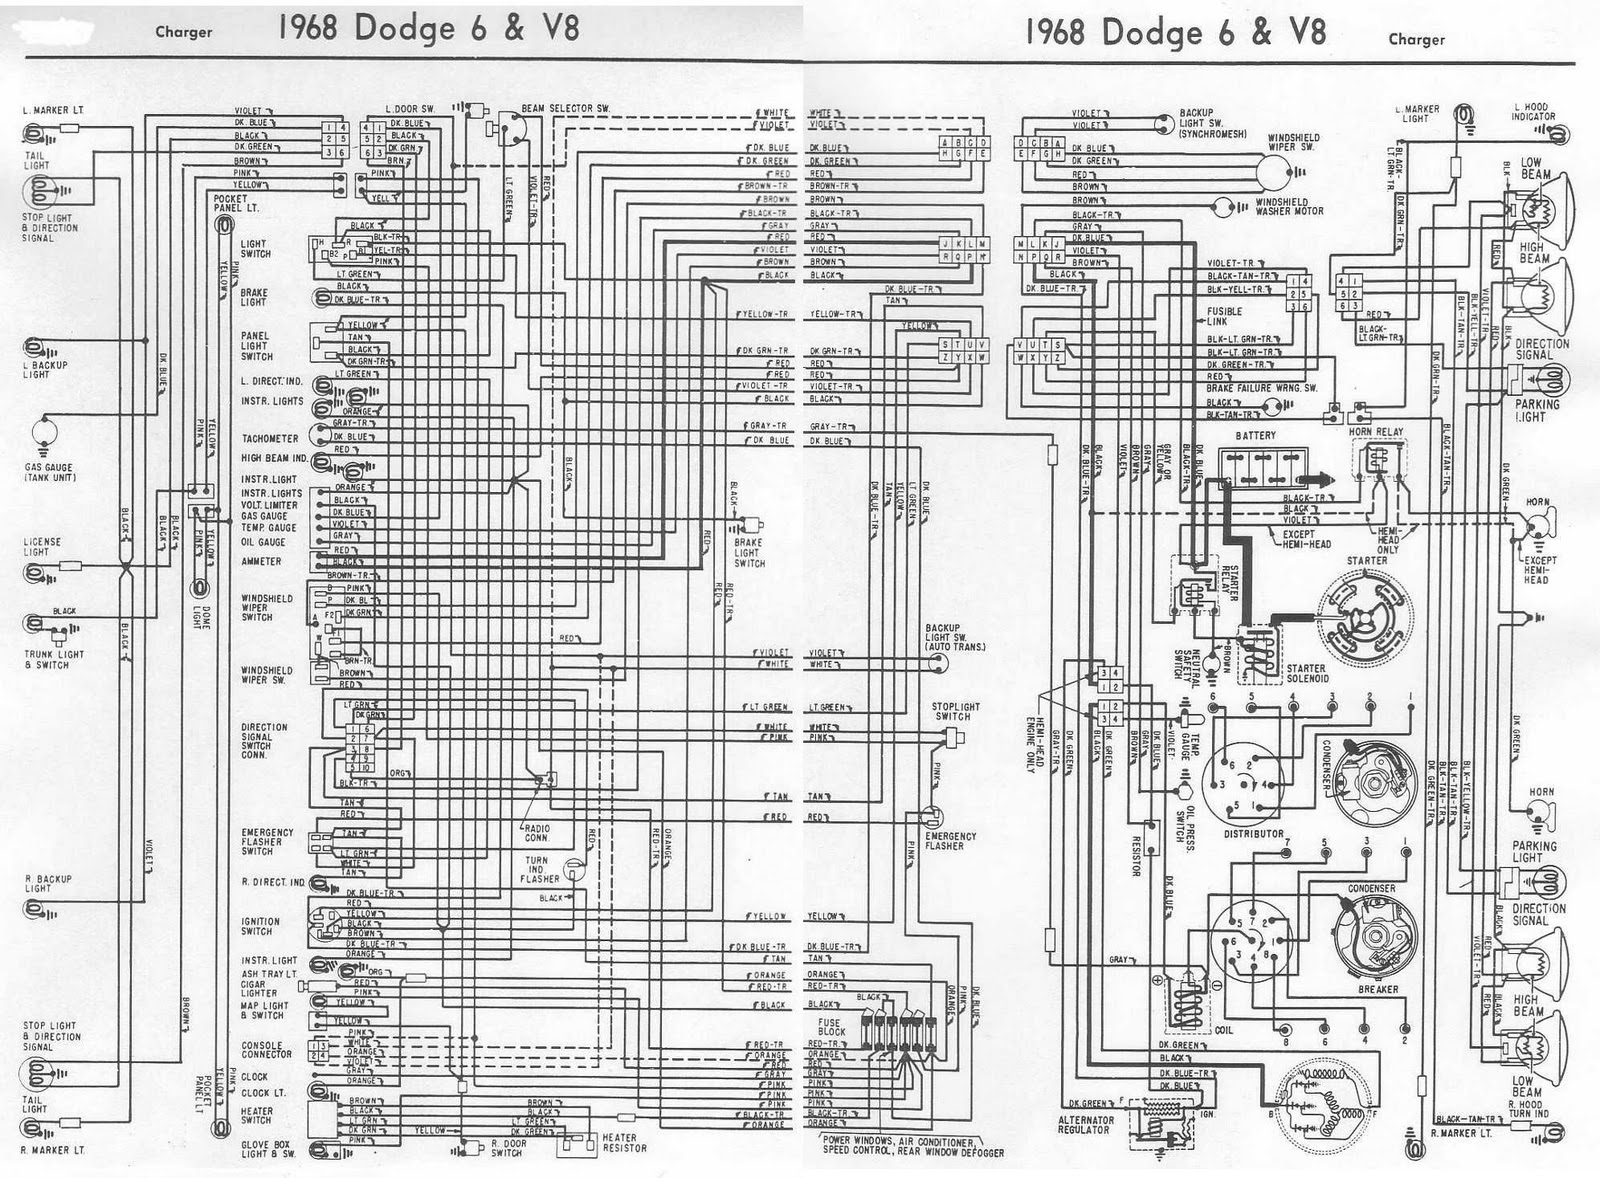 1995 Ford Truck Alternator Diagram